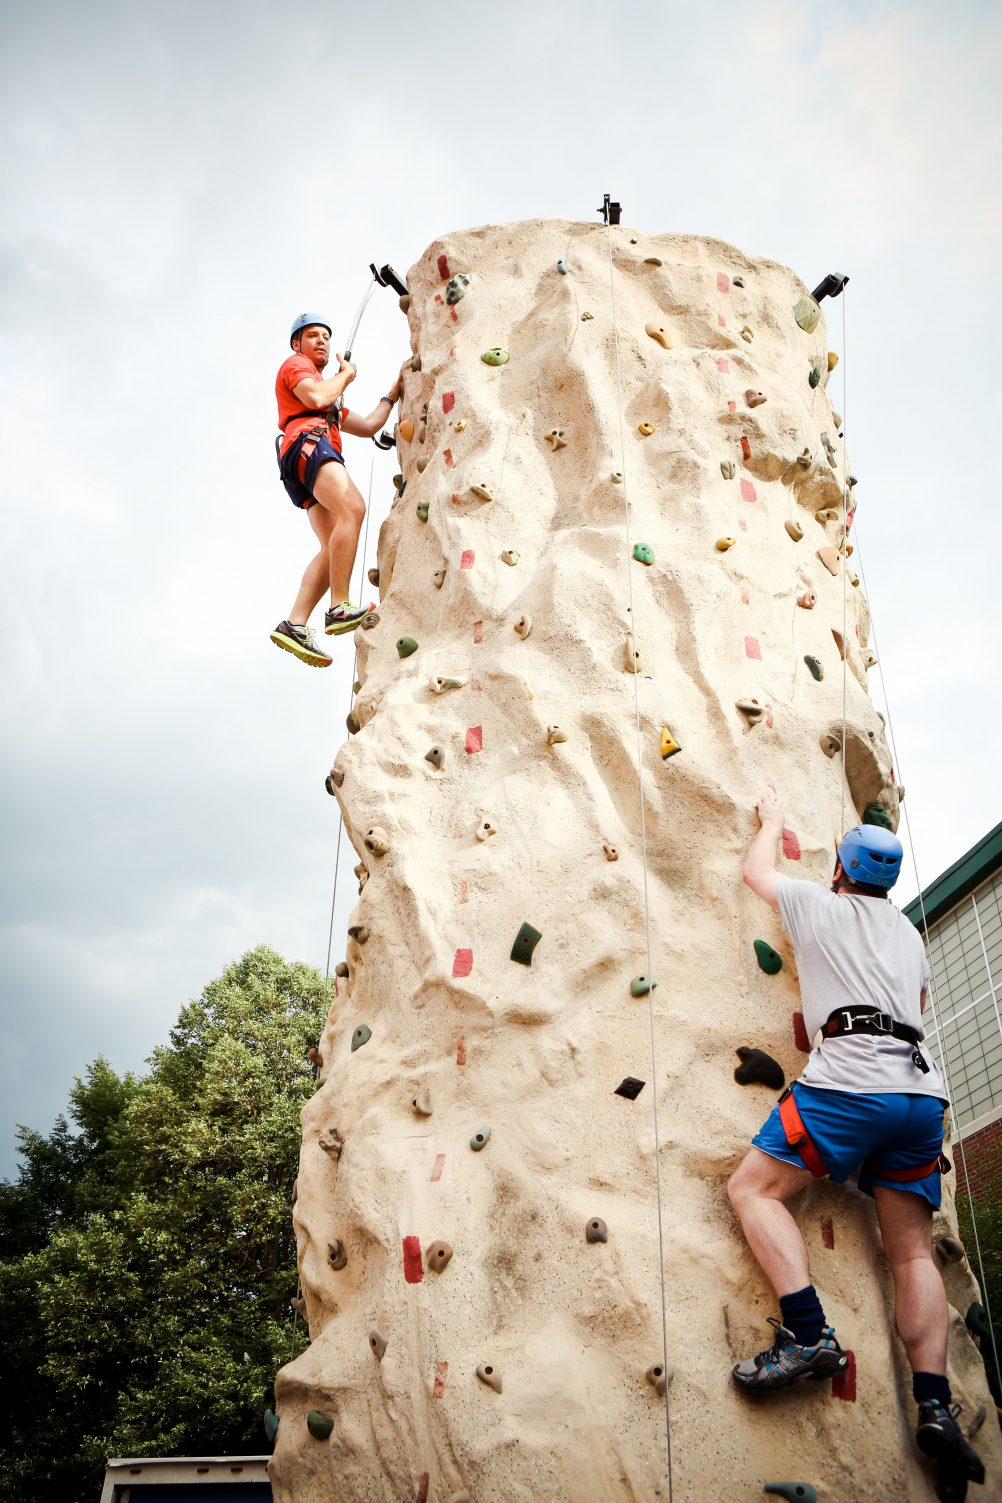 boston_party_entertainment_inflatables_Rock Wall_1